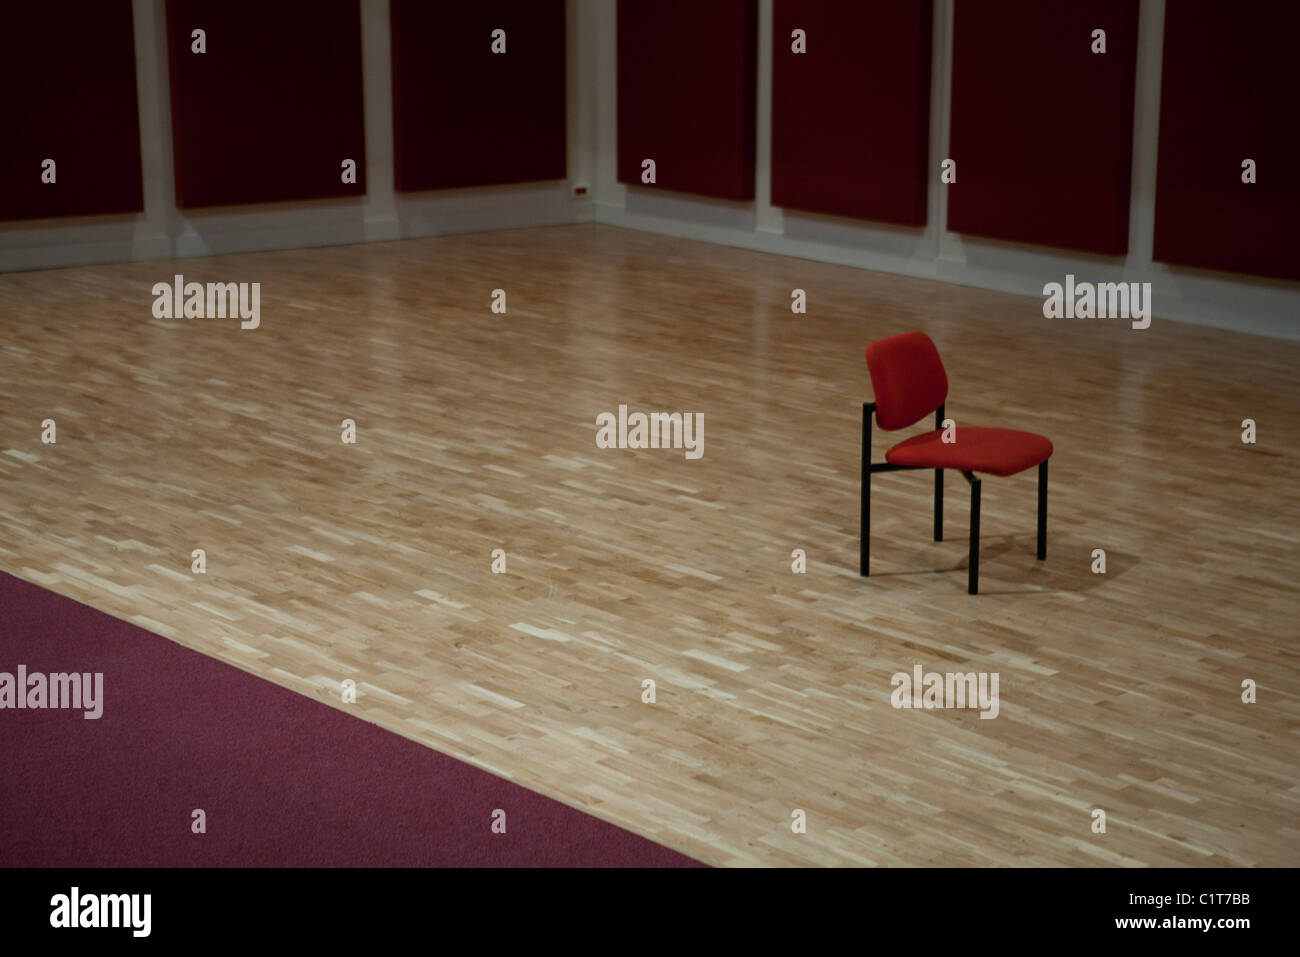 Lone chair in empty room - Stock Image